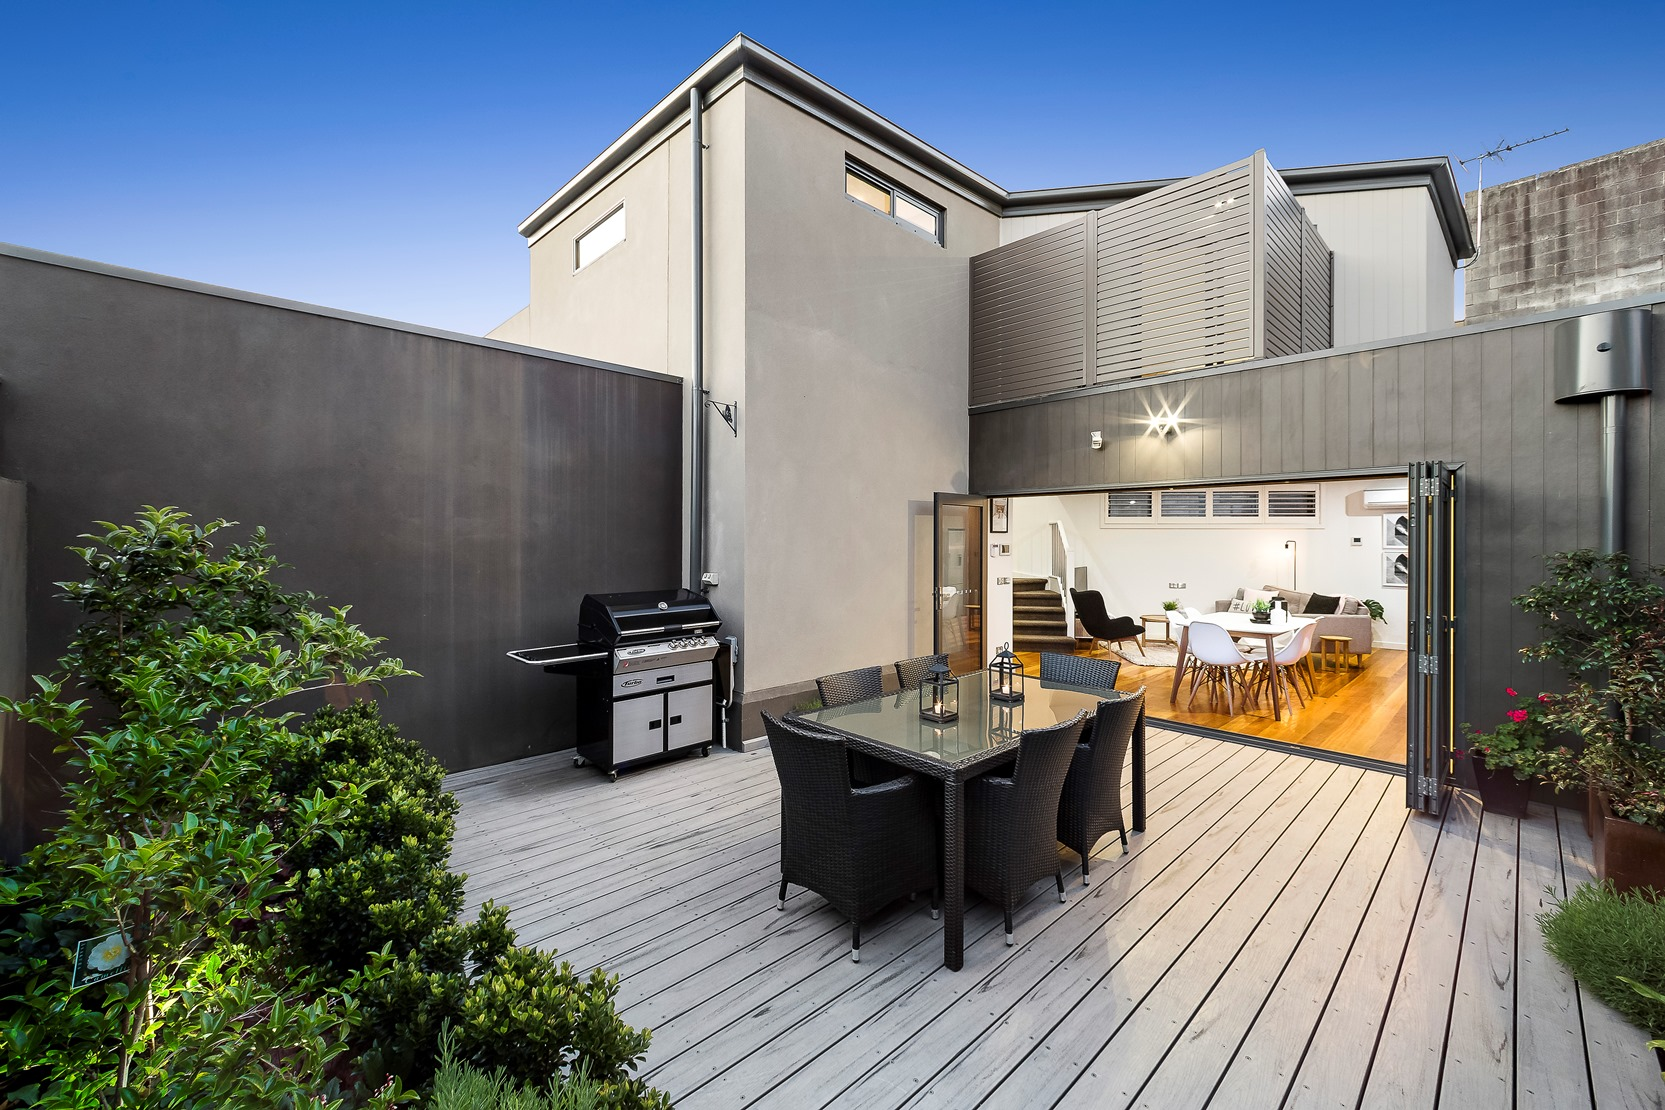 Kew House Design Outdoor Dining Patio Wooden Boards